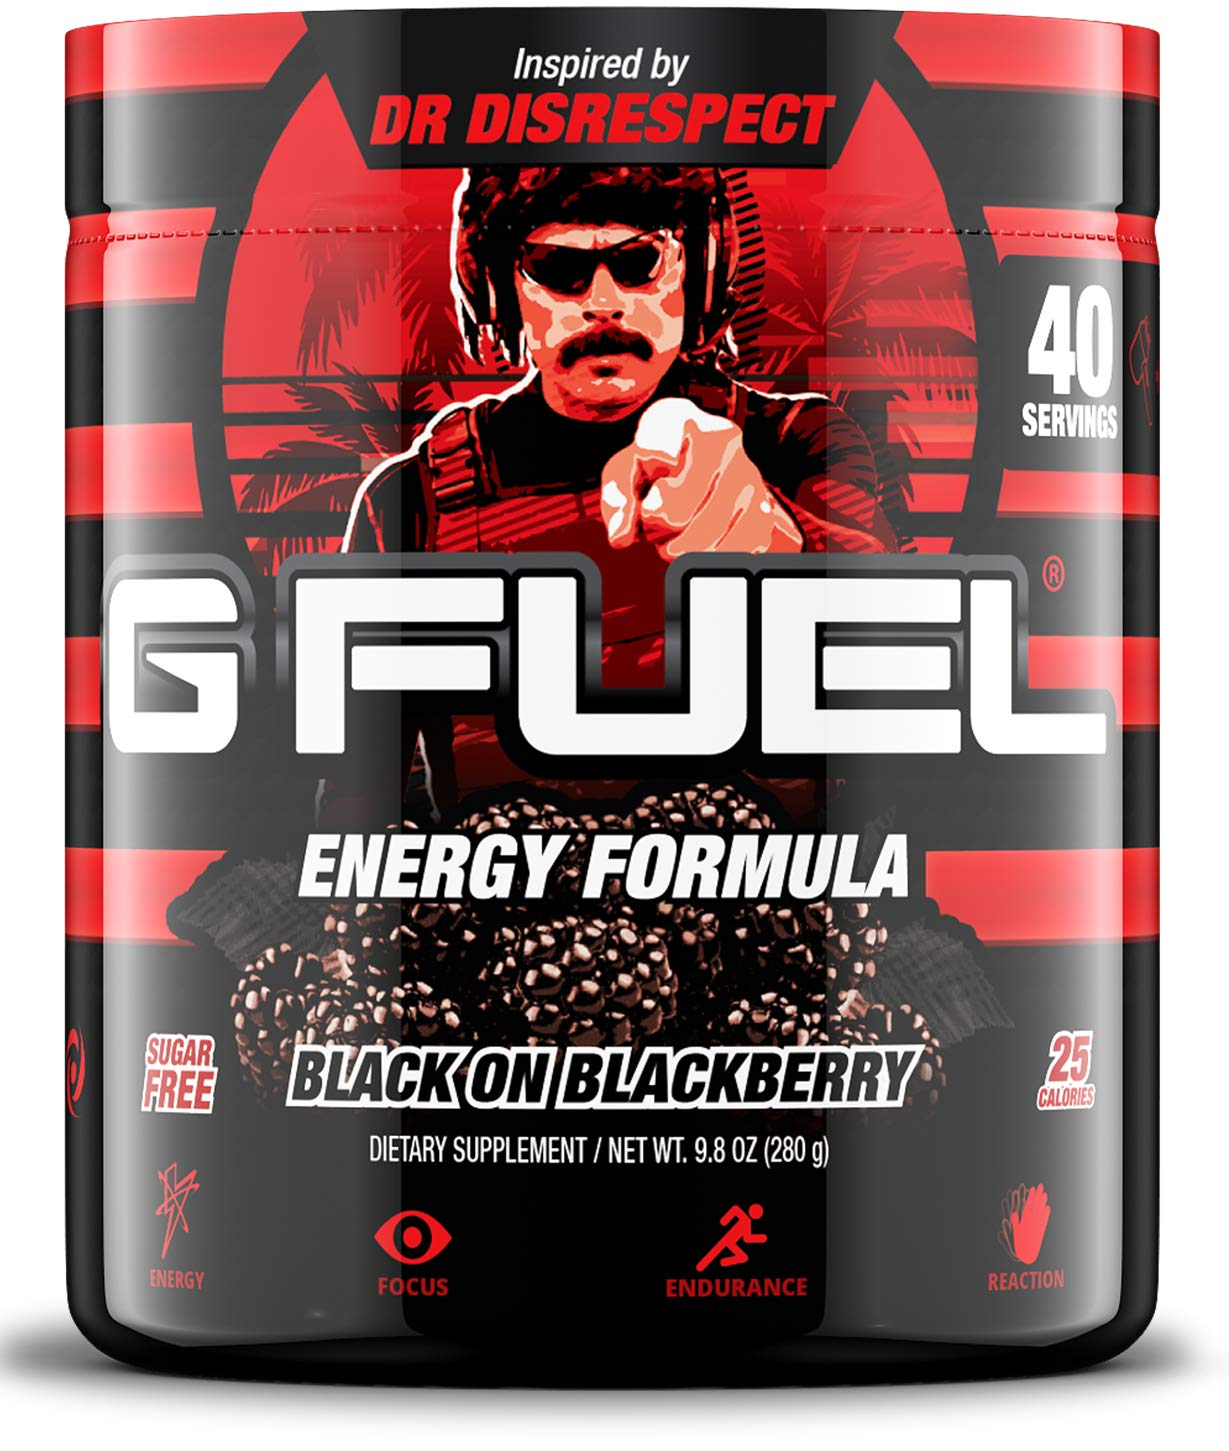 G Fuel Black on BlackBerry Tub (40 Servings) Elite Energy and Endurance Formula Inspired by Dr Disrespect by G Fuel